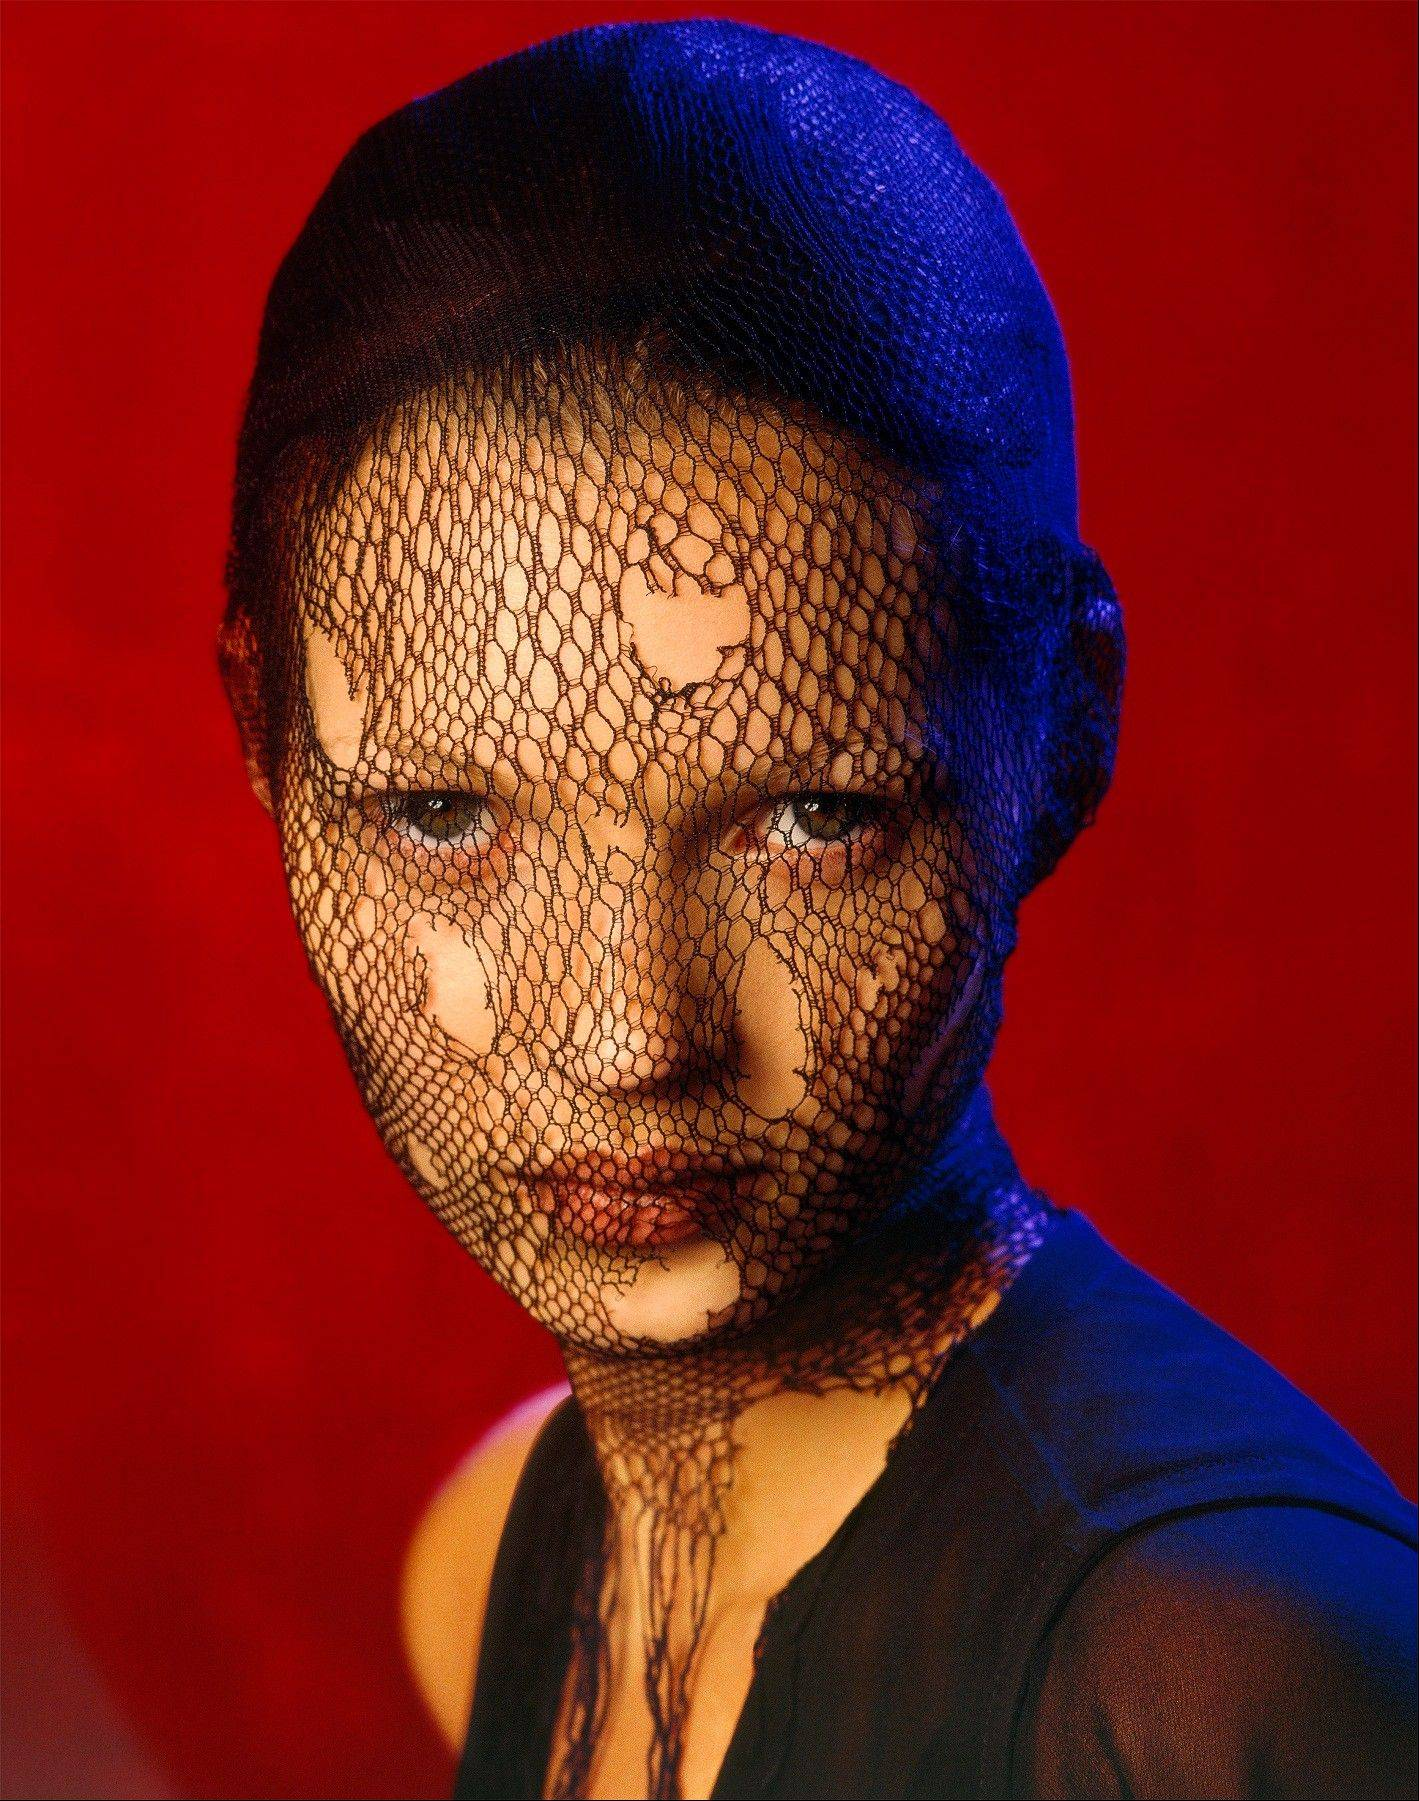 This image made available by Christie's auction house on Wednesday July 3, 2013 shows an image of British model Kate Moss, 'Kate Moss in Torn Veil', Marrakech, 1993 by Albert Watson. Few people have been photographed more often than Kate Moss, and some of the most famous images of the supermodel are going under the hammer at a Christie's auction in London on Sept. 25.